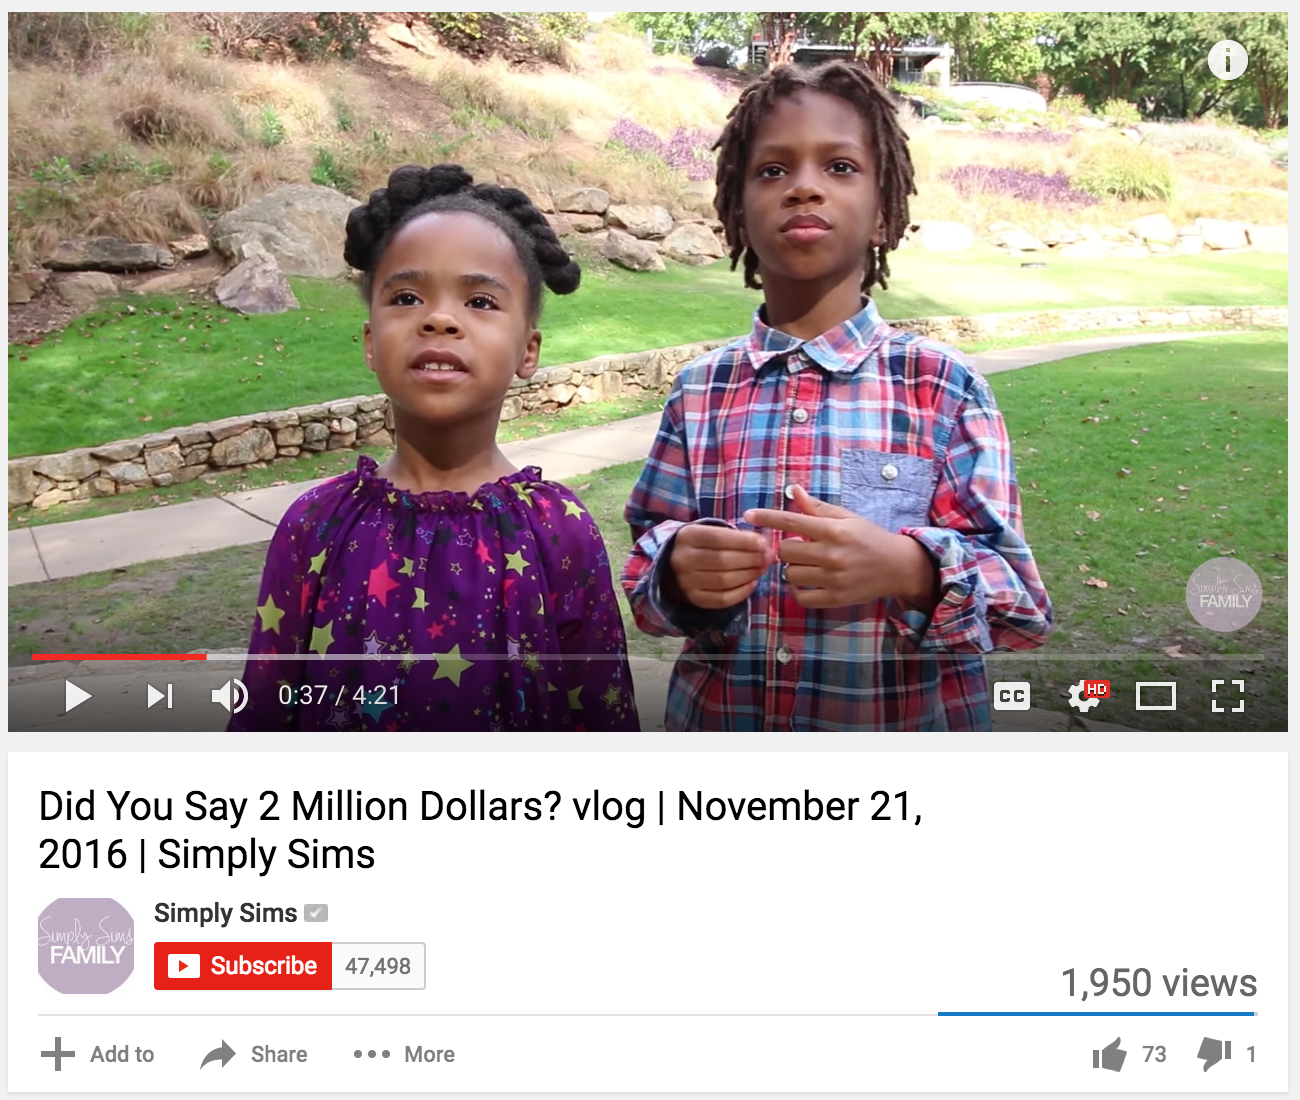 SimplySims_YouTube.png